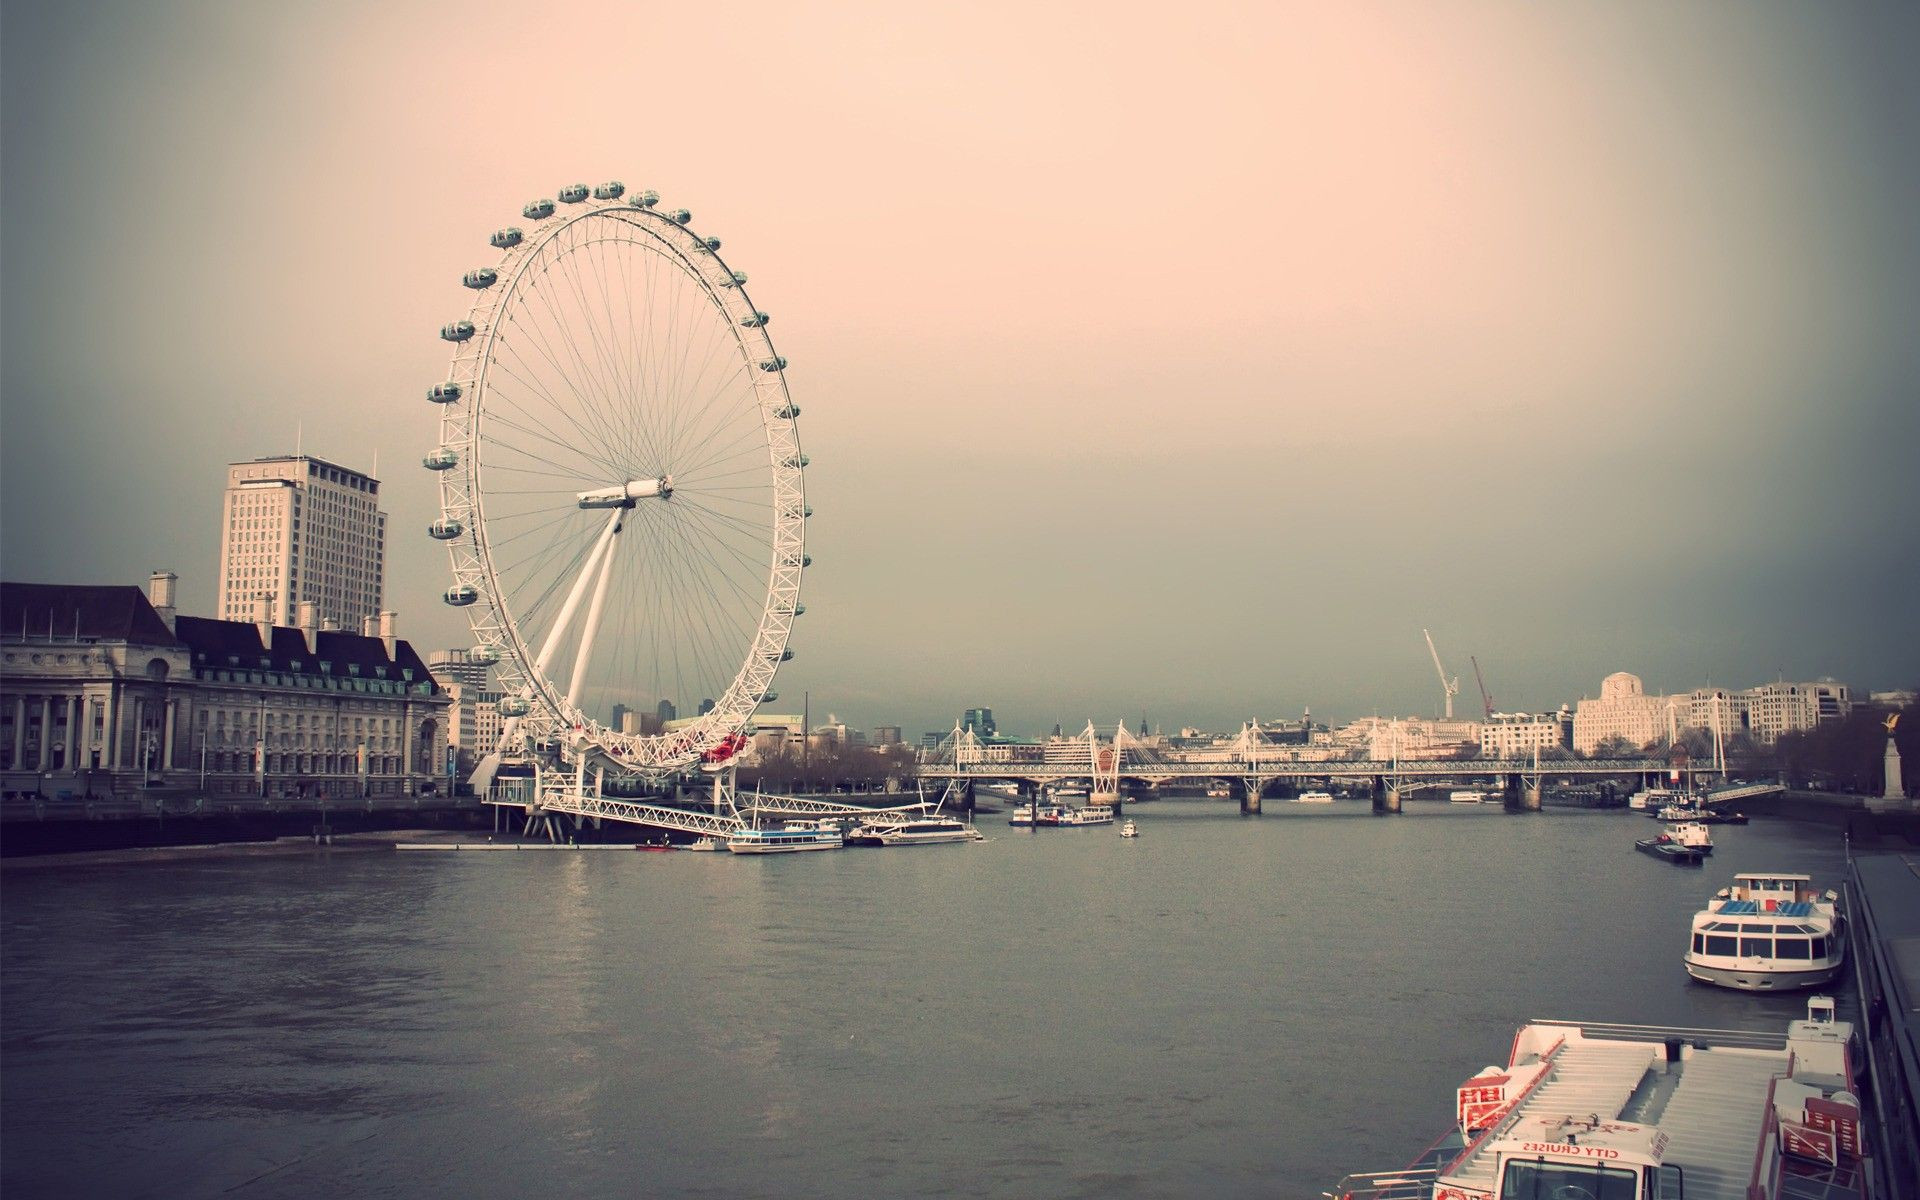 Thames London Eye I wanna go back